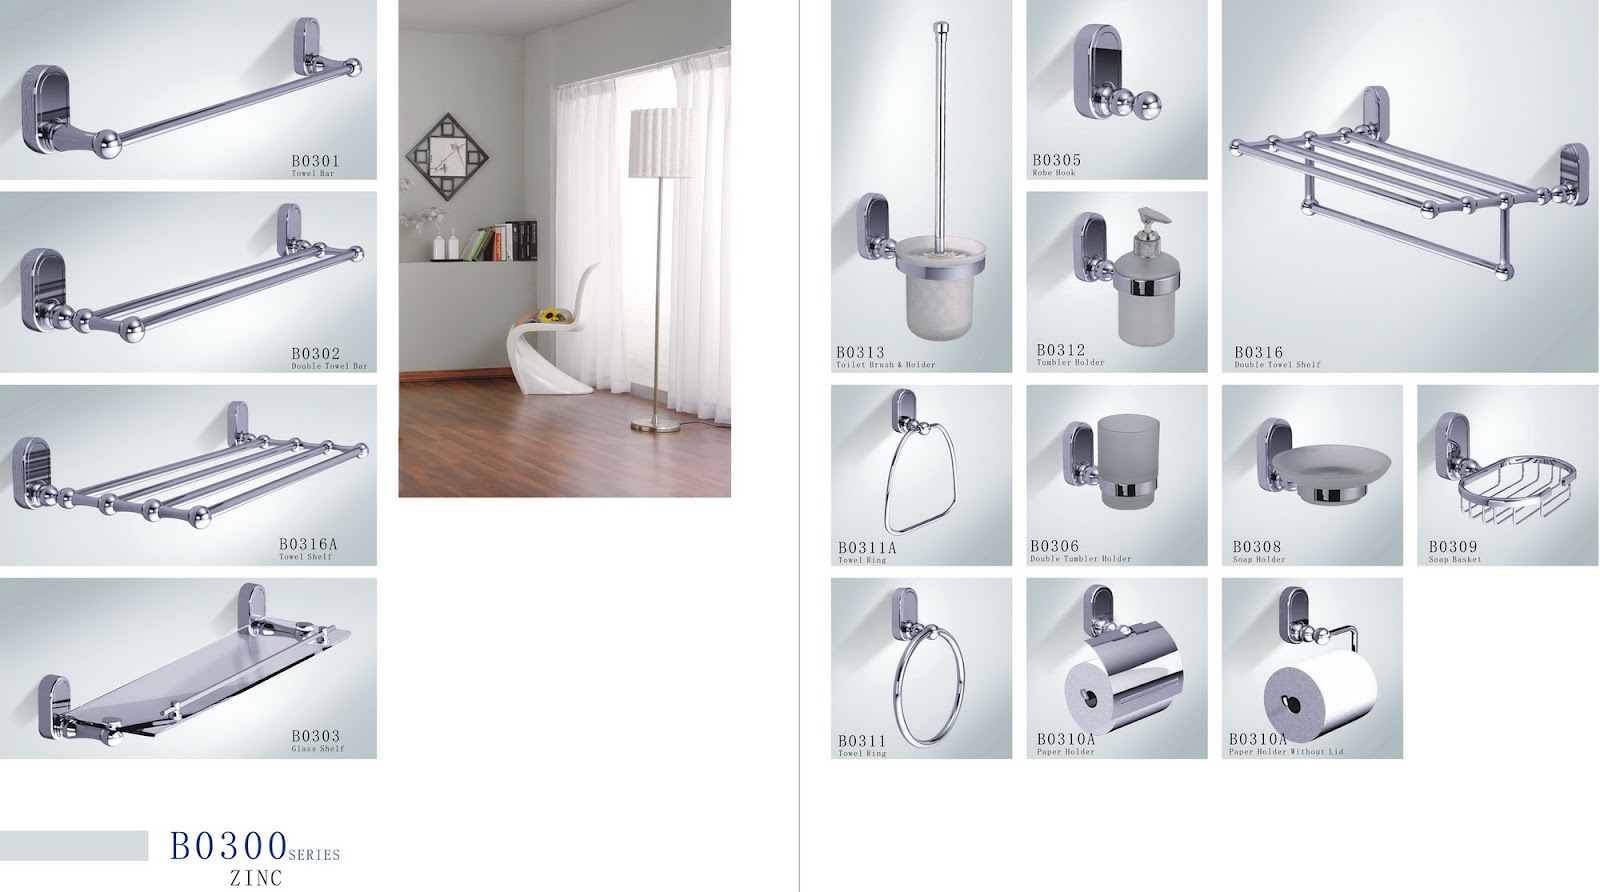 Bathroom fittings mirrors towel rods soap dish mirrors corner stand  Other  items Bathroom fittings mirrors. Bathroom Corner Stand